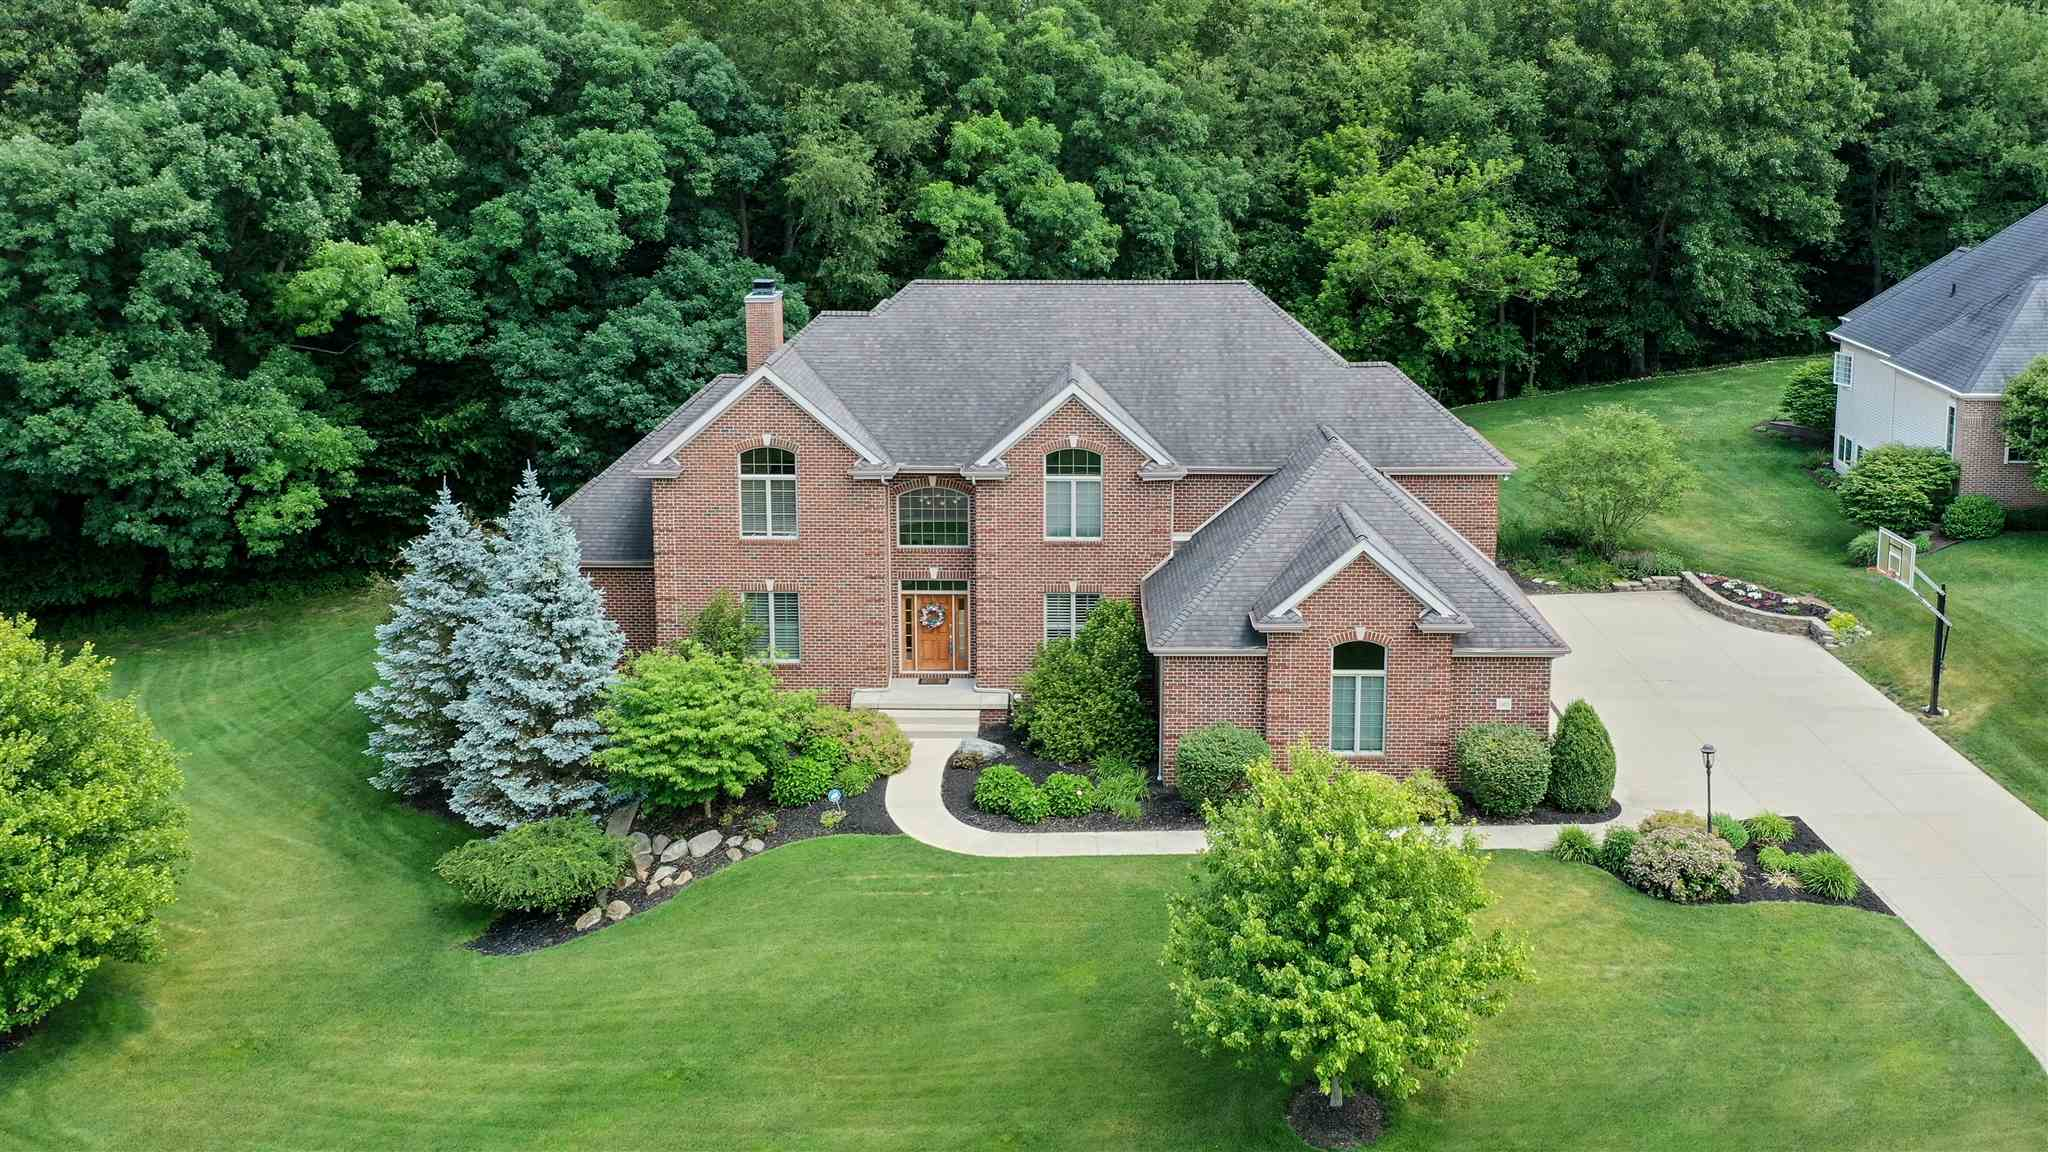 2603 Wildwood Lane, Winona Lake, IN 46590